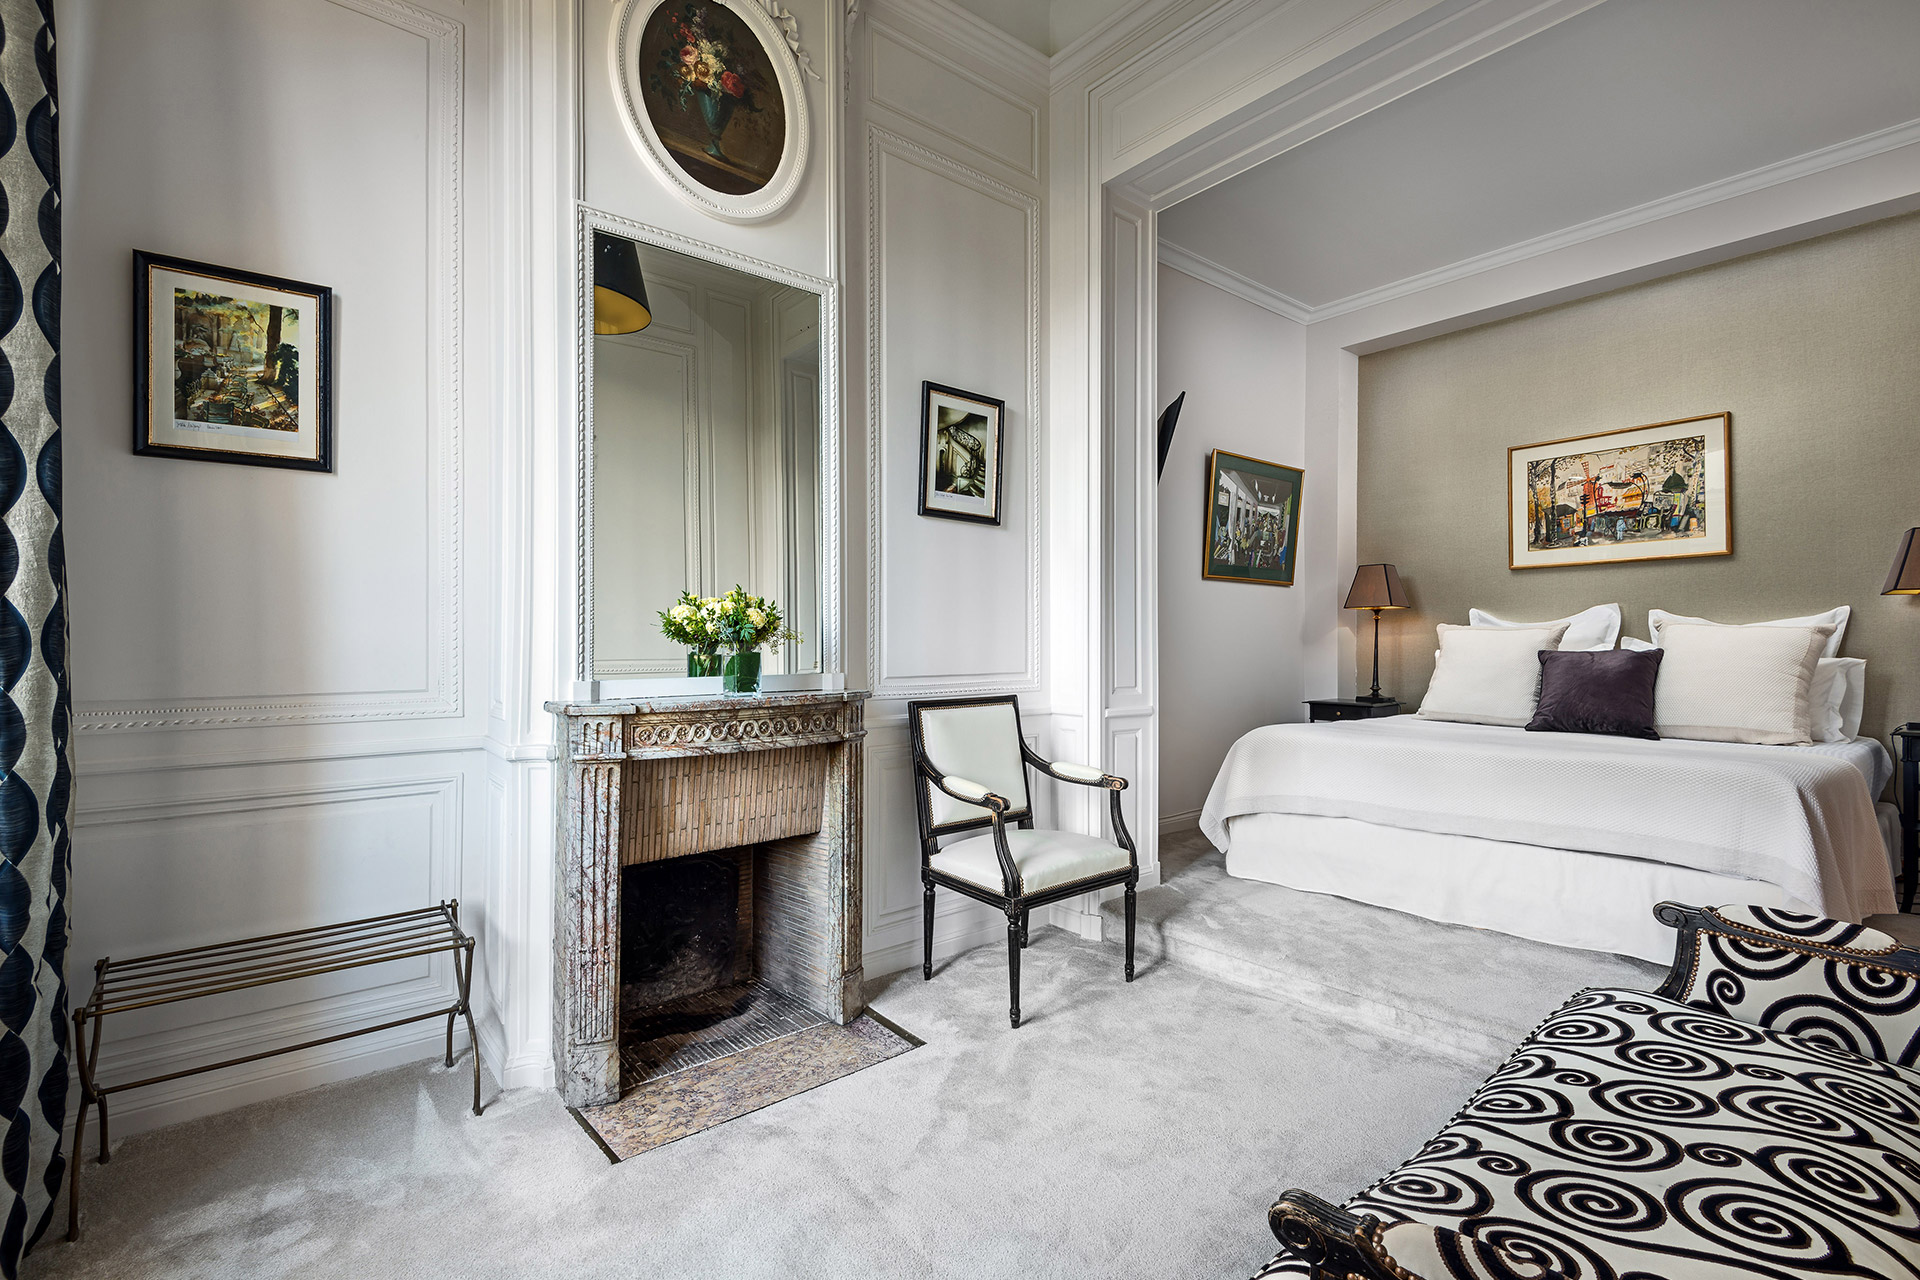 Refined artistic choices in the bedroom of the Chopine vacation rental offered by Paris Perfect